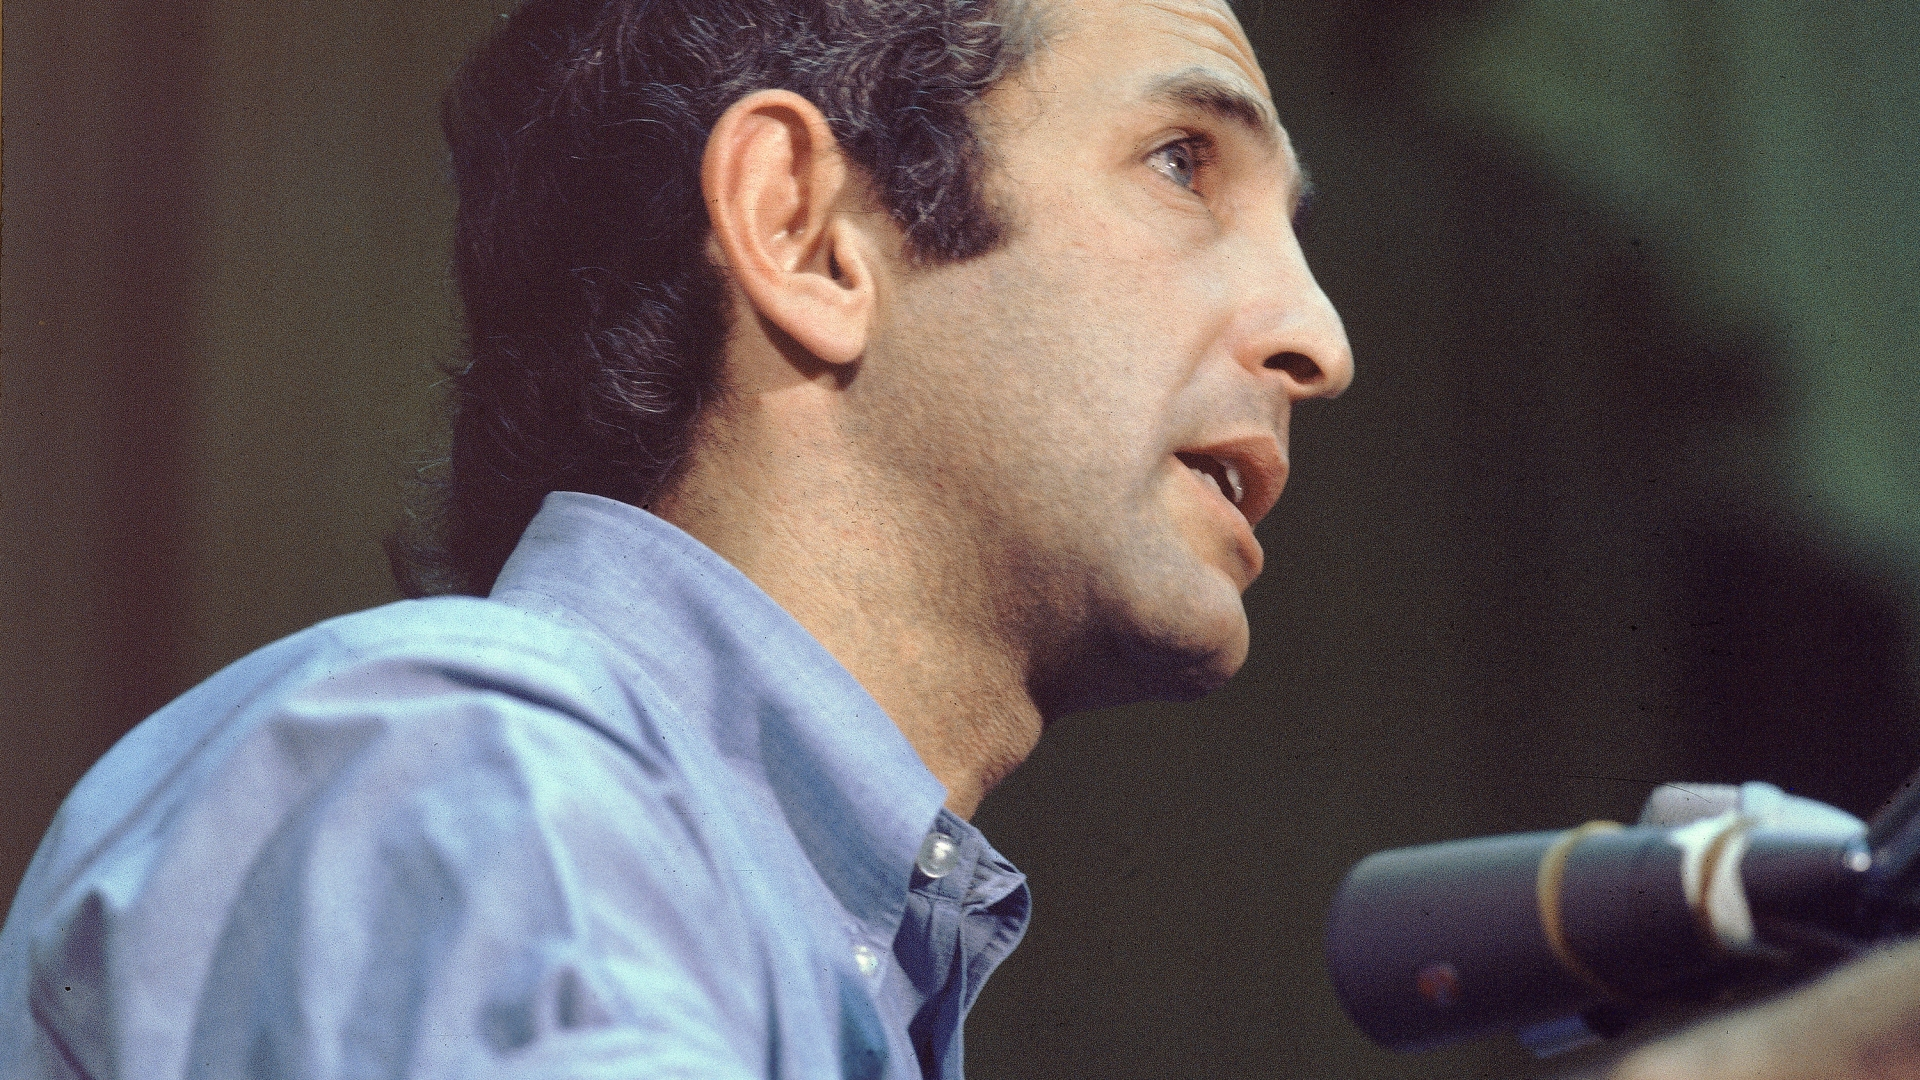 Daniel Ellsberg, publisher of 'The Pentagon Papers,' speaking at a press conference. (Credit: Pictorial Parade/Getty Images)